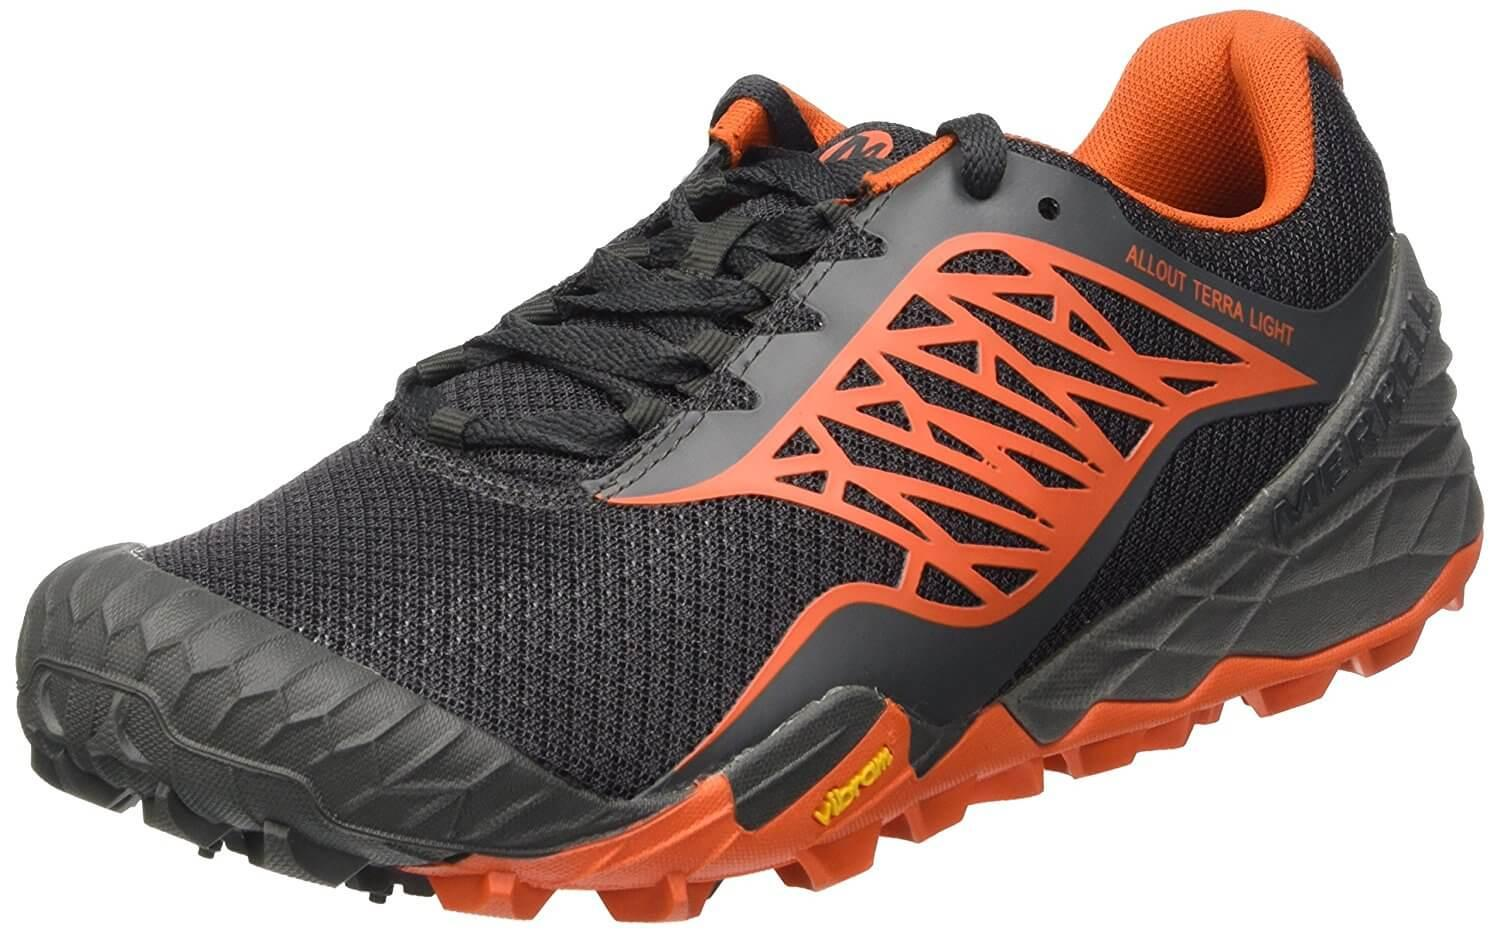 Merrell All Out Terra Turf Walking Shoes S100p4693